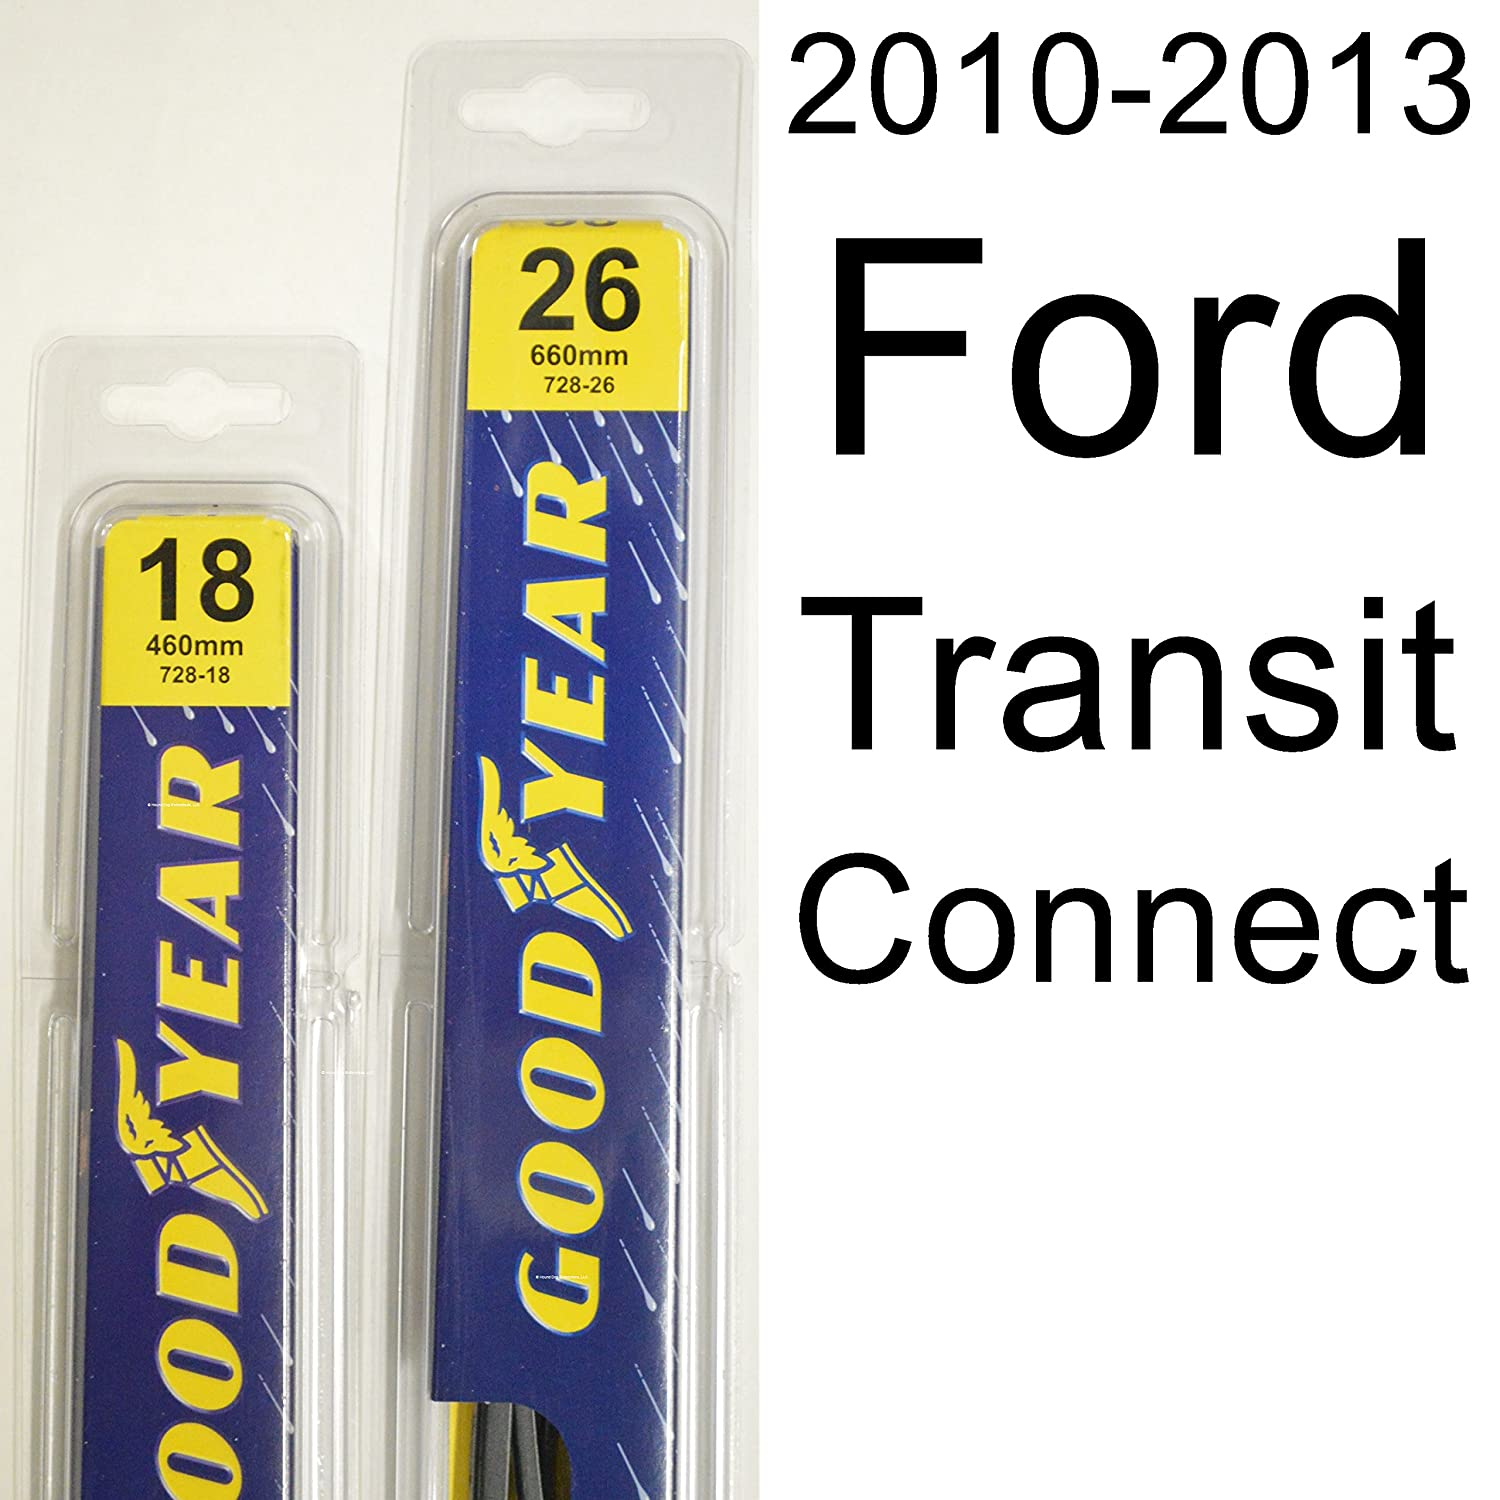 Ford Transit Connect 2010 2013 Wiper Blade Kit Set Toyota Avalon Wiring Diagram Includes 26 Driver Side 18 Passenger 2 Blades Total Automotive